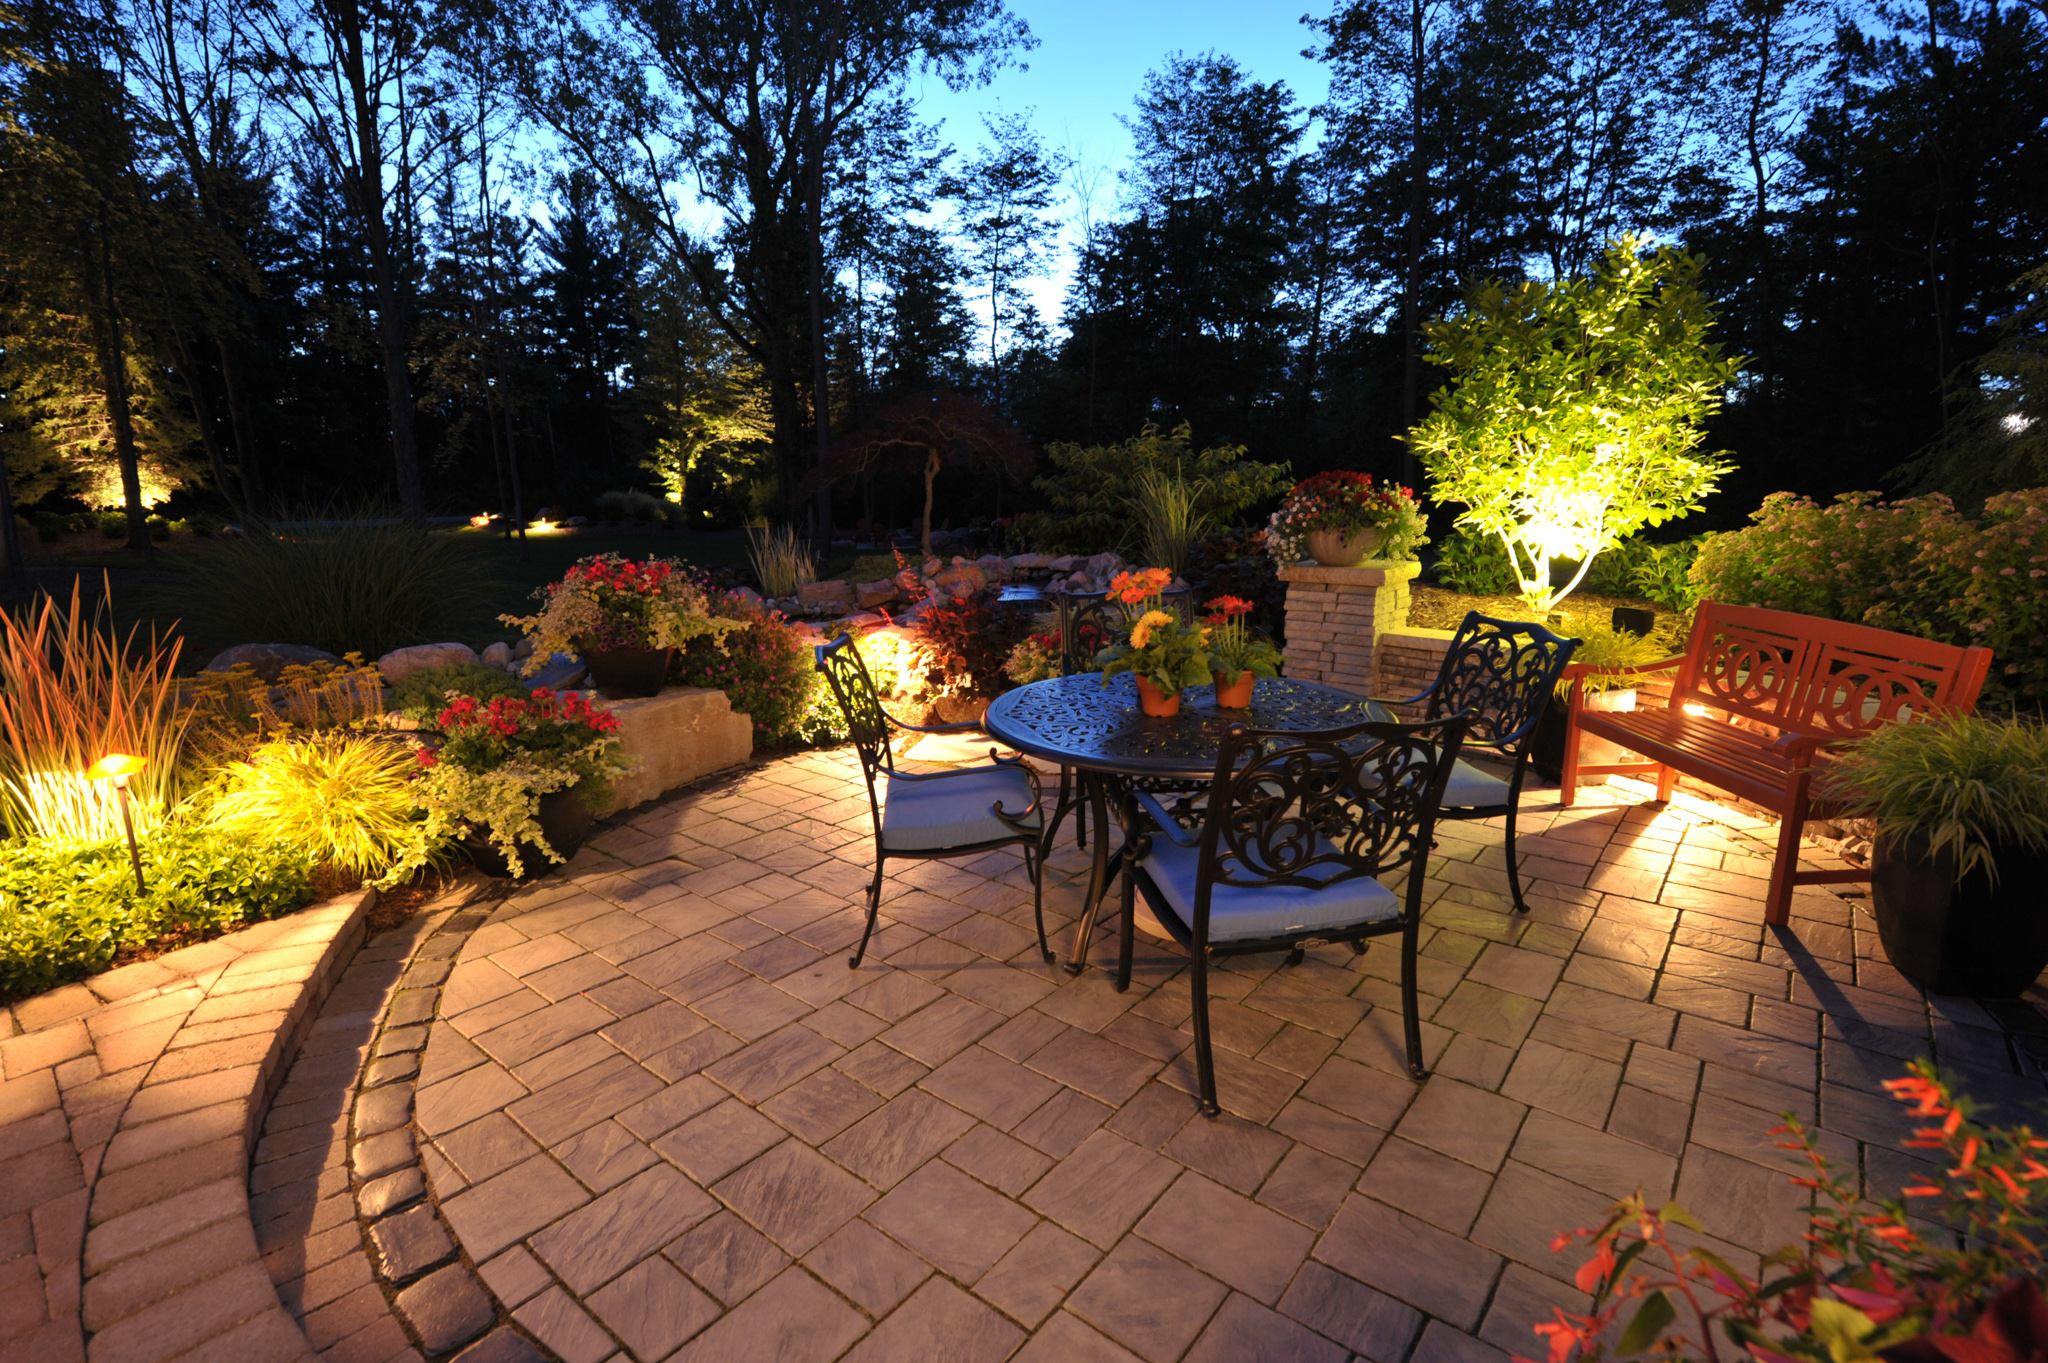 Landscape Lighting Ideas  Lawn Care Midland MI